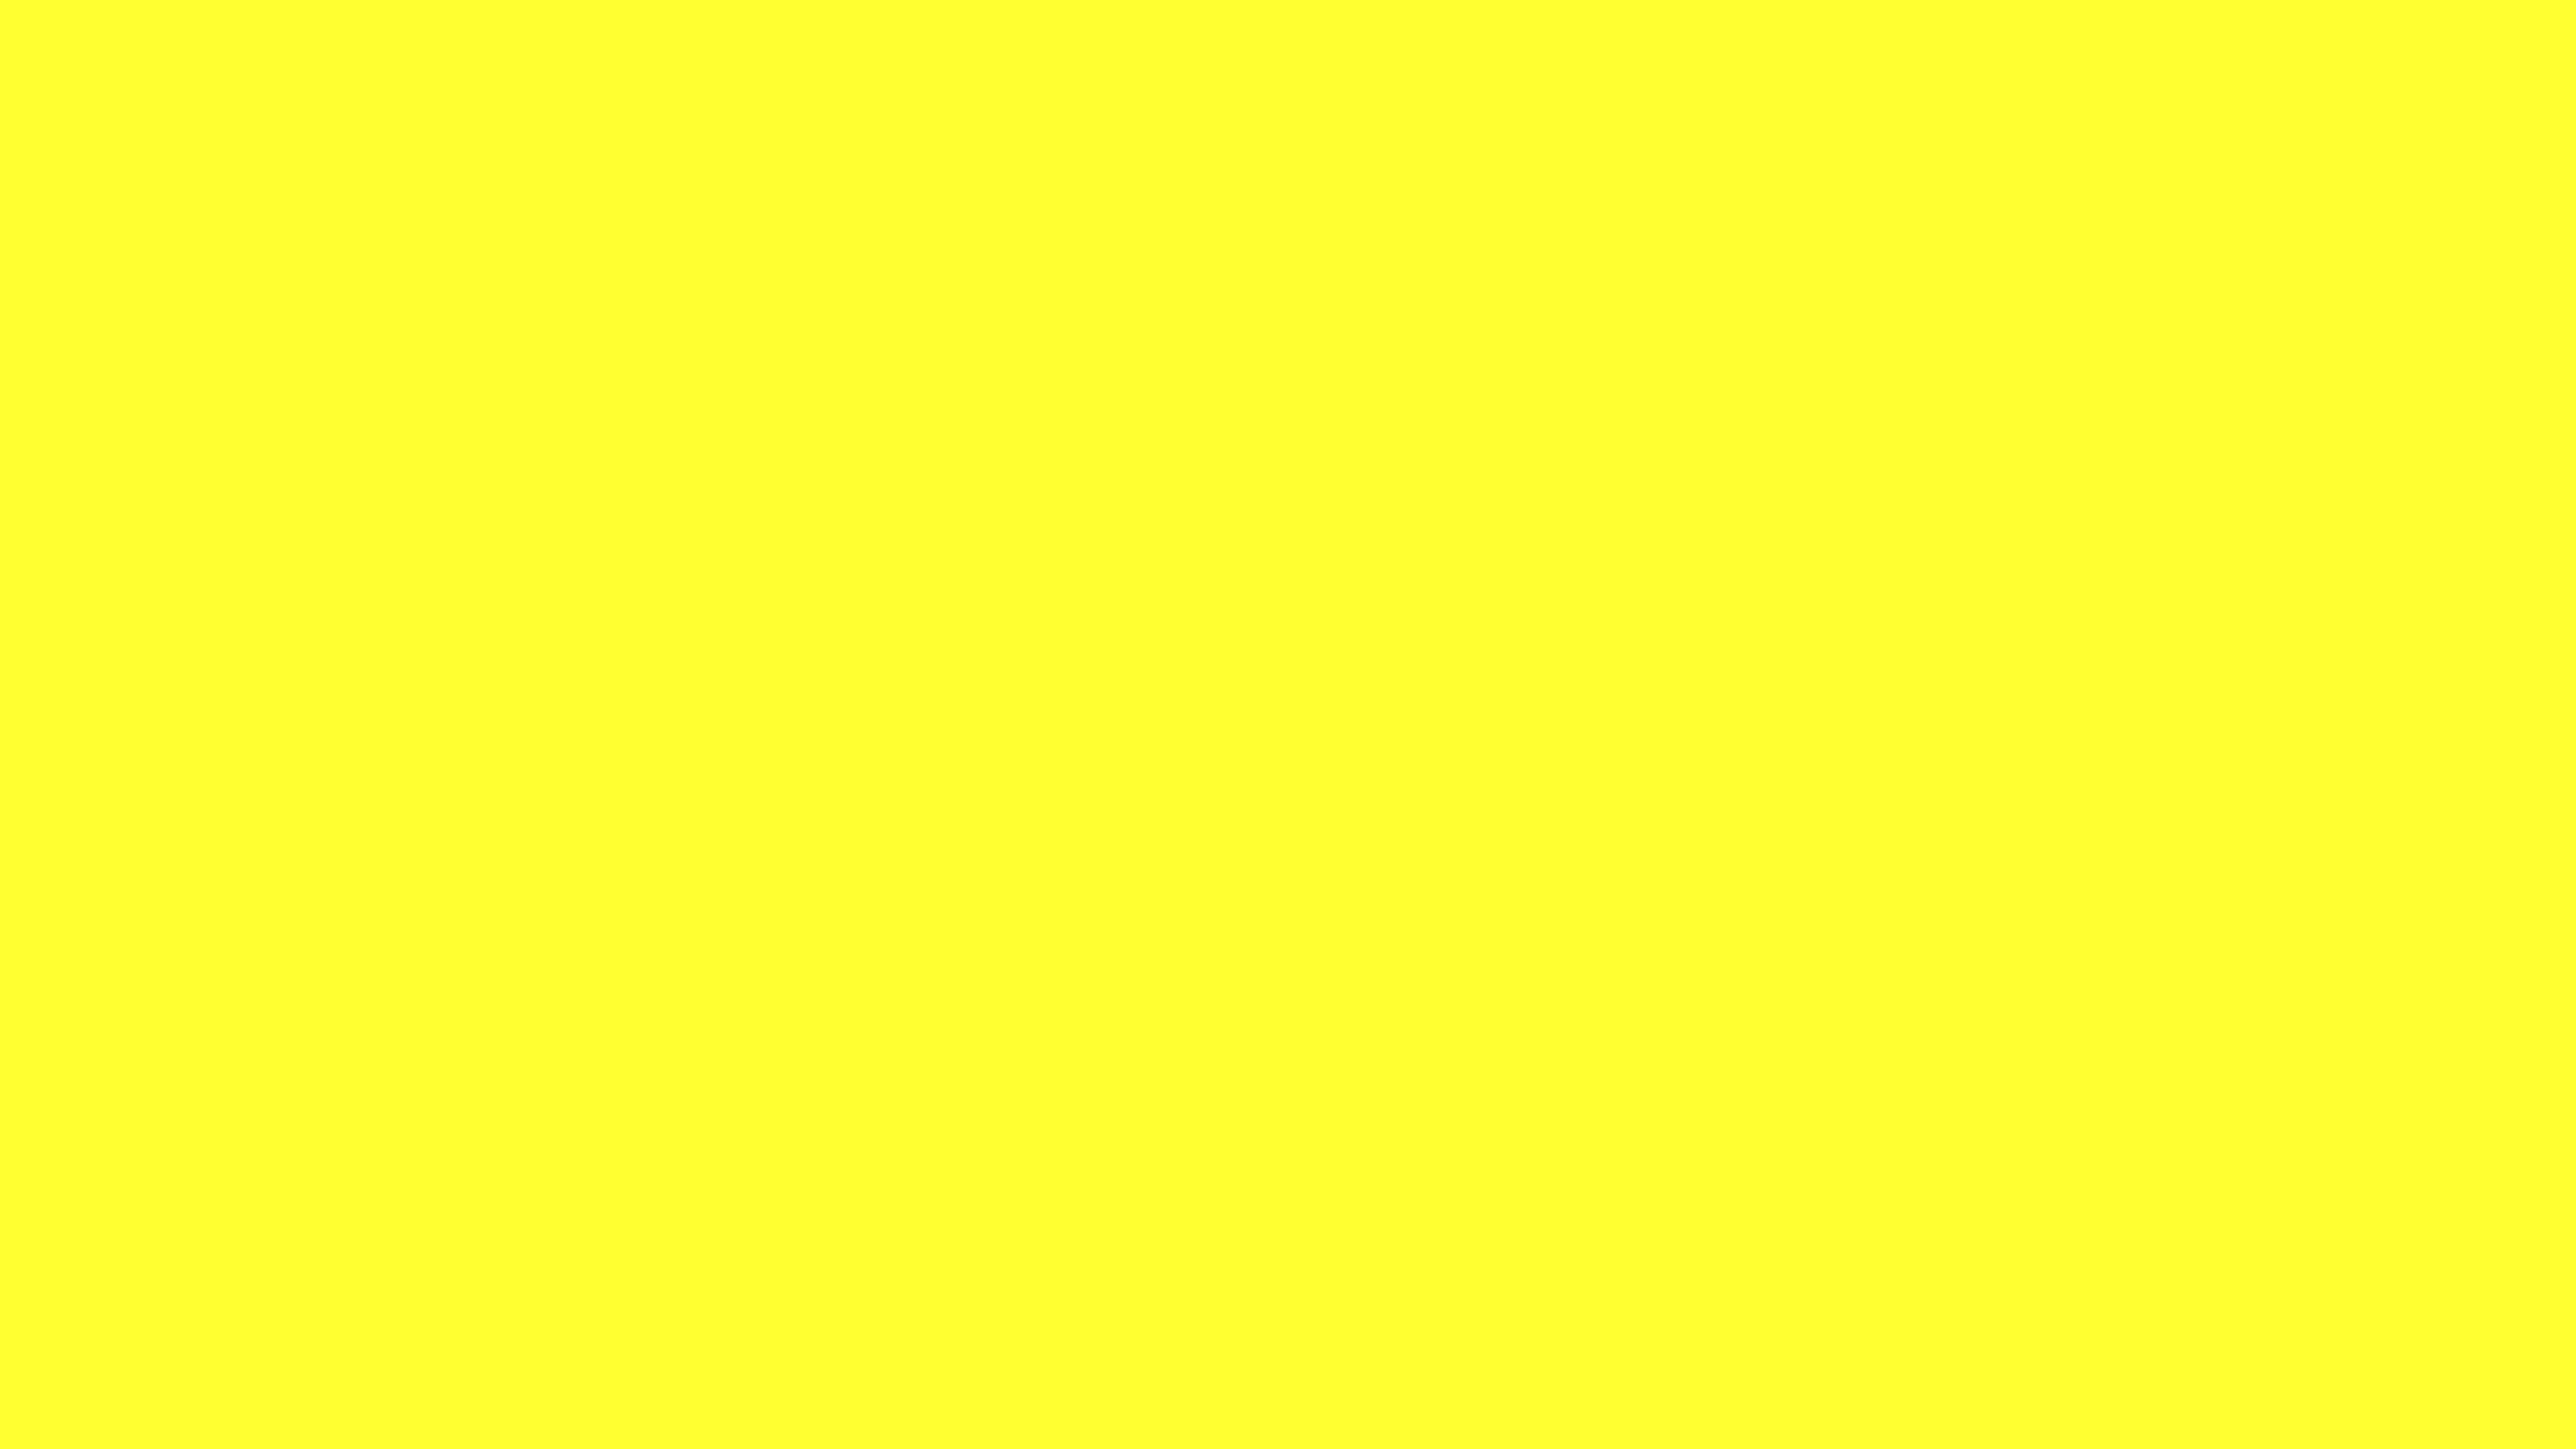 7680x4320 Daffodil Solid Color Background